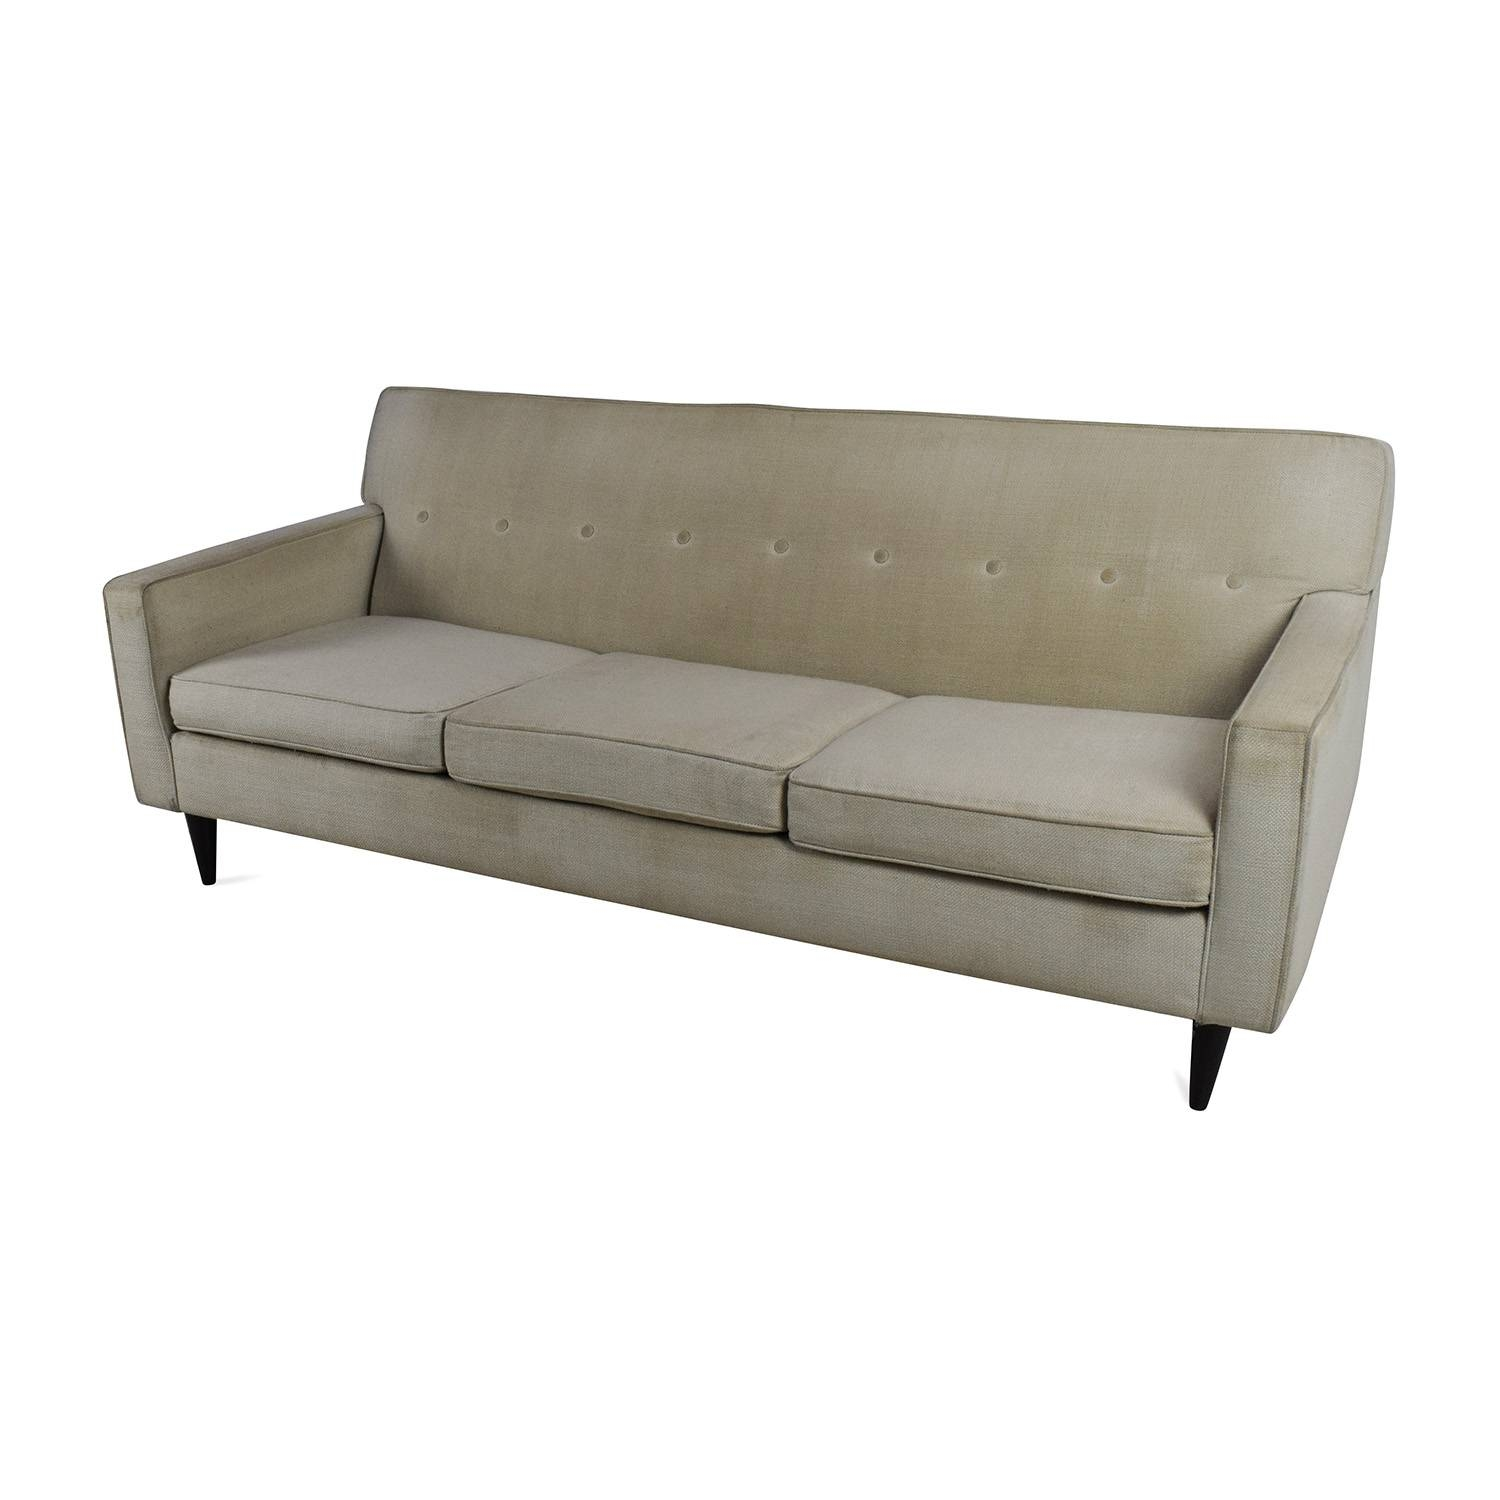 Sofa Sleeper Sale. Tufted Sectional Sofa Sectional Sofas For Sale intended for Pull Out Queen Size Bed Sofas (Image 21 of 30)